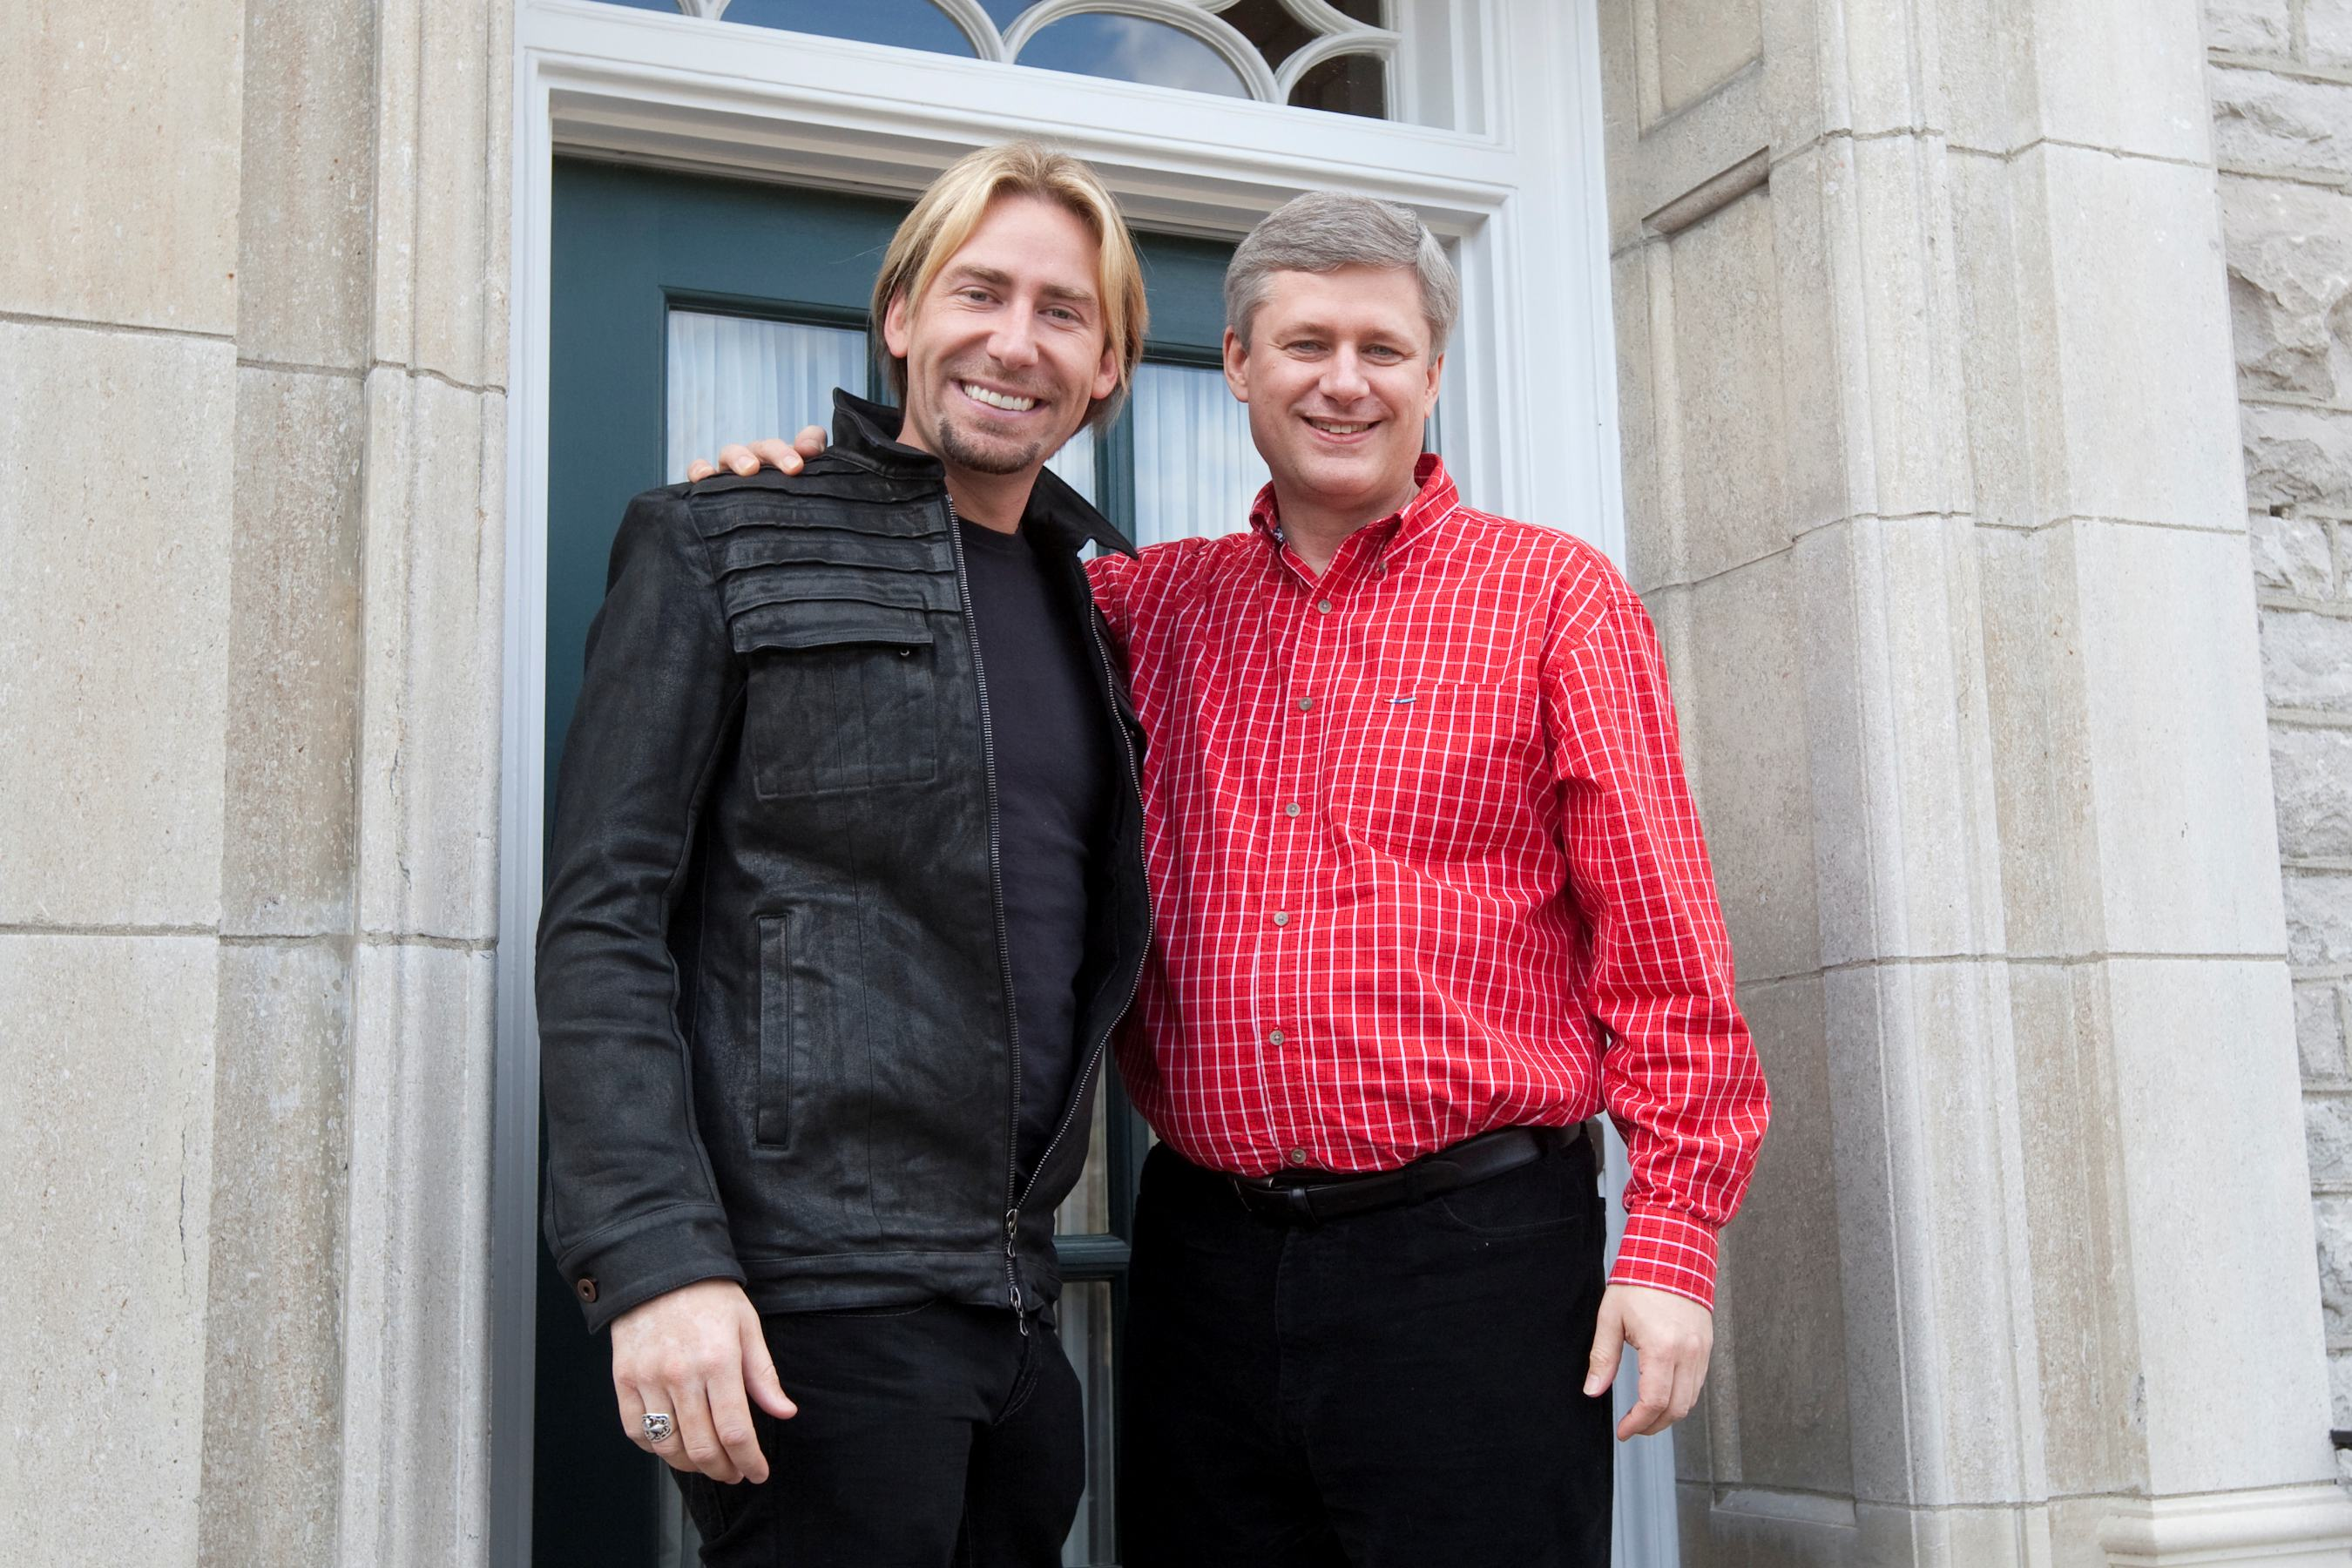 Stephen Harper and Chad Kroeger